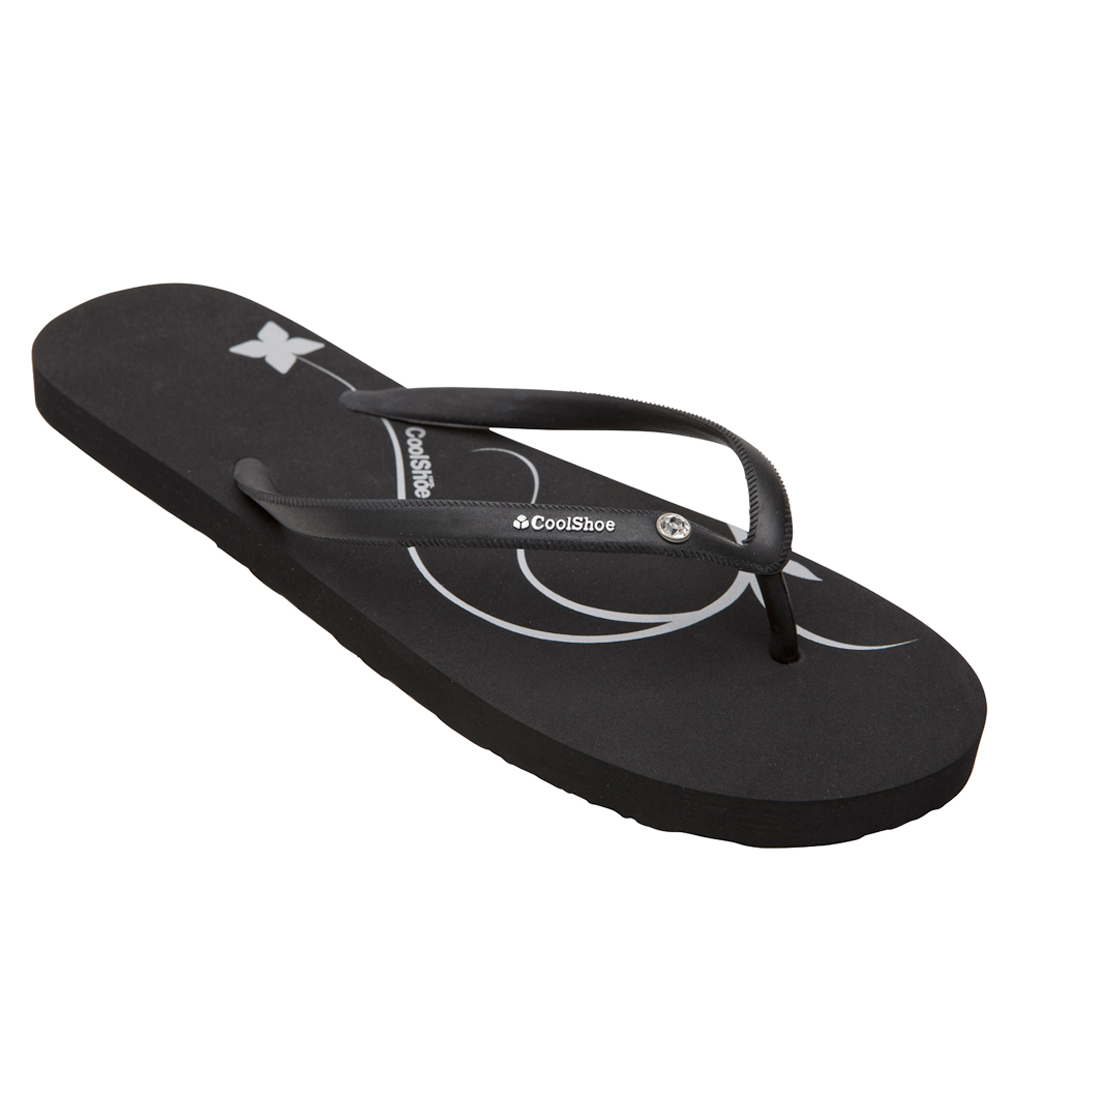 cool shoe natural womens flip flops footwear the. Black Bedroom Furniture Sets. Home Design Ideas